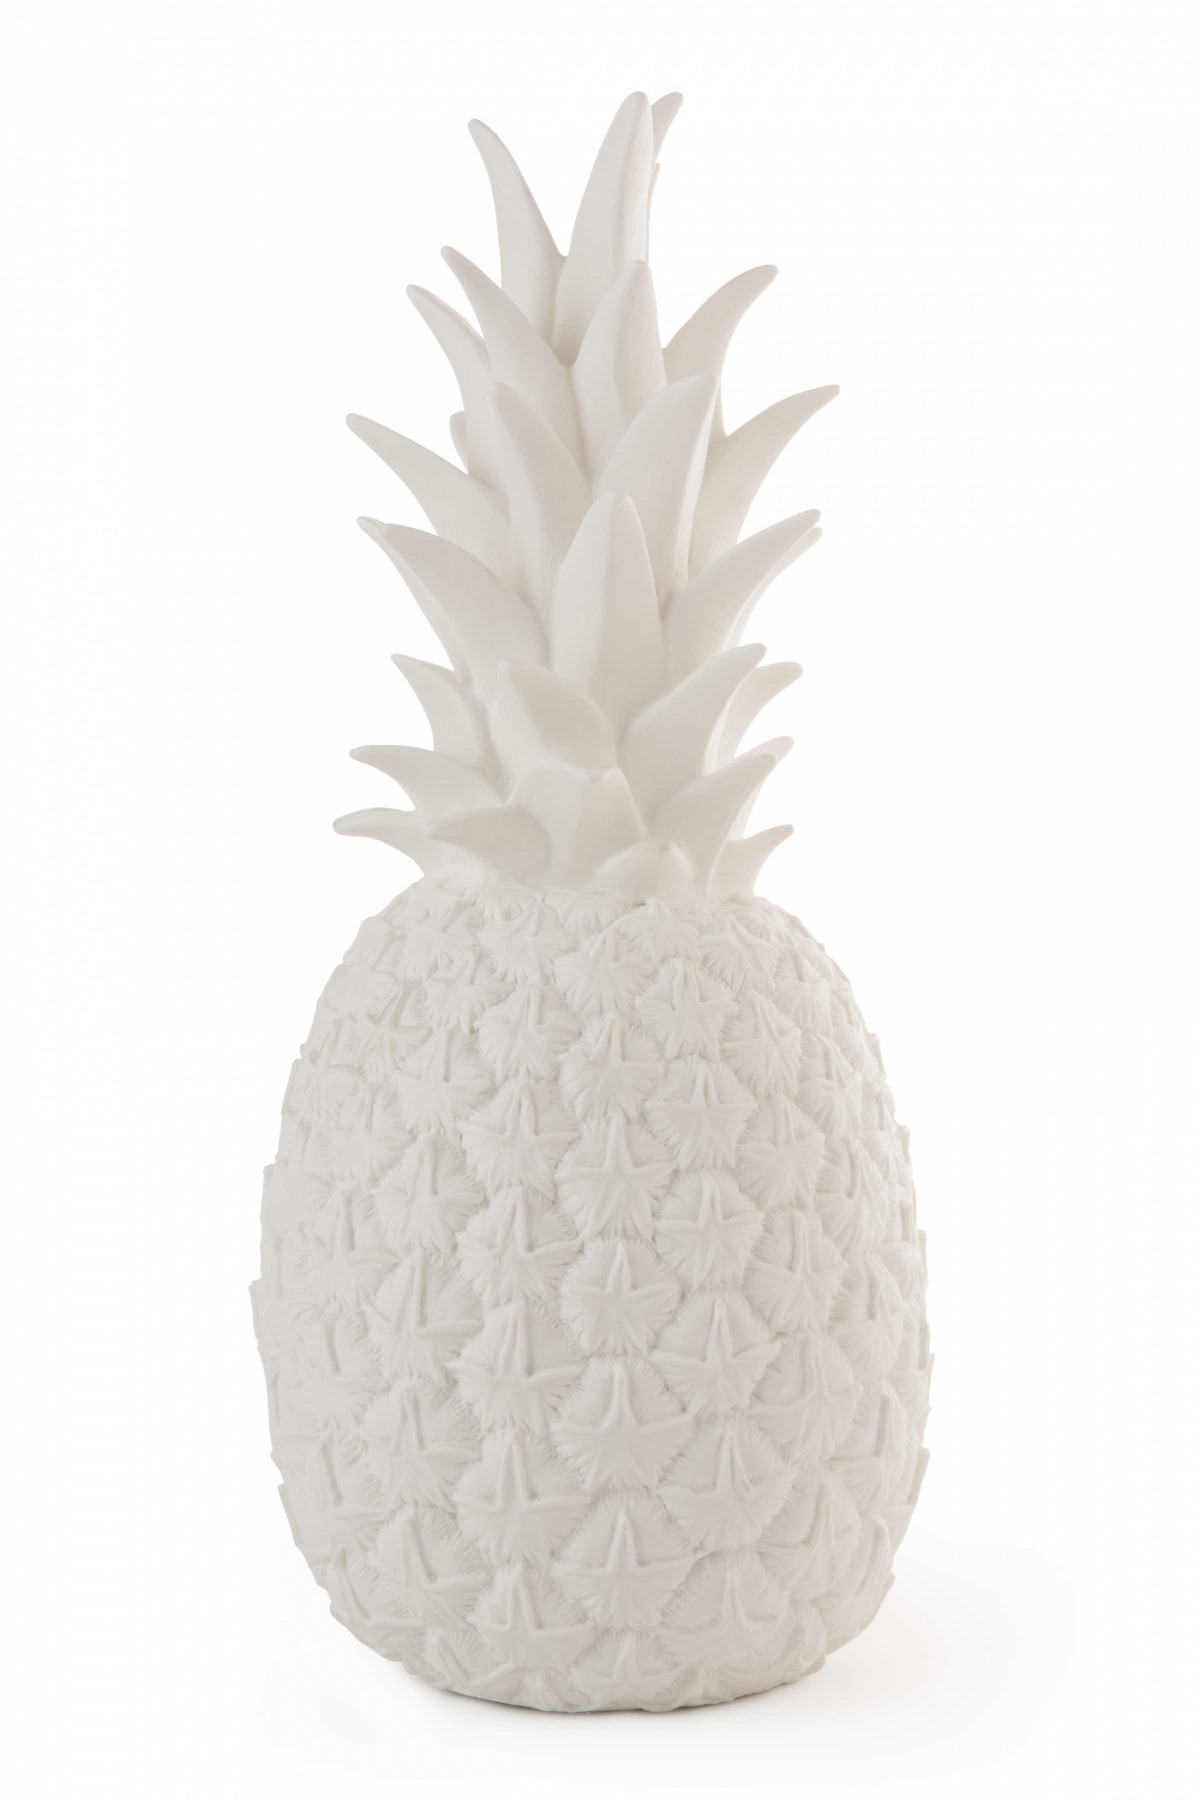 LIGHT PINA COLADA WHITE